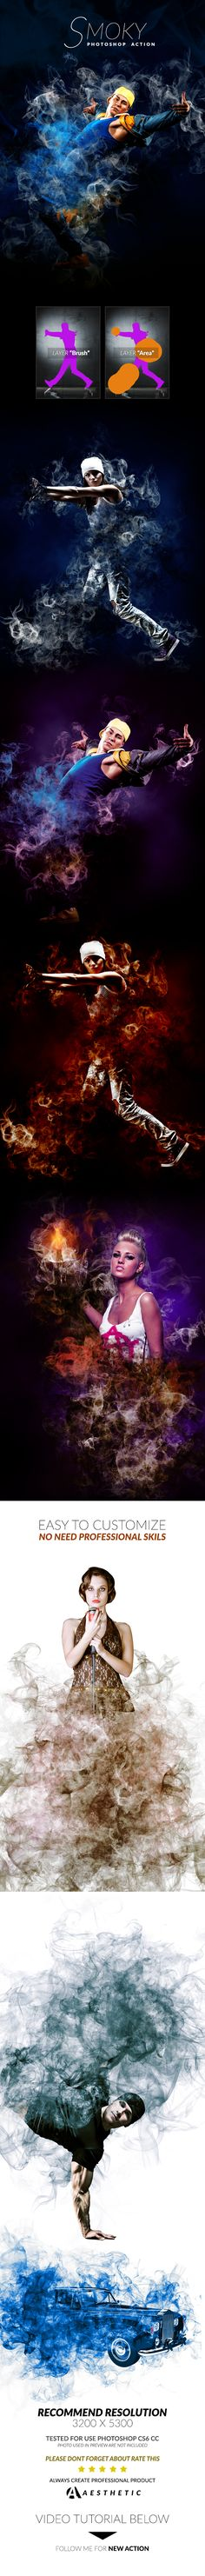 Smoky Action - Photo Effects Actions #PSAction #Photoshop #PS #Graphicriver #PhotoEffects #Design #Art